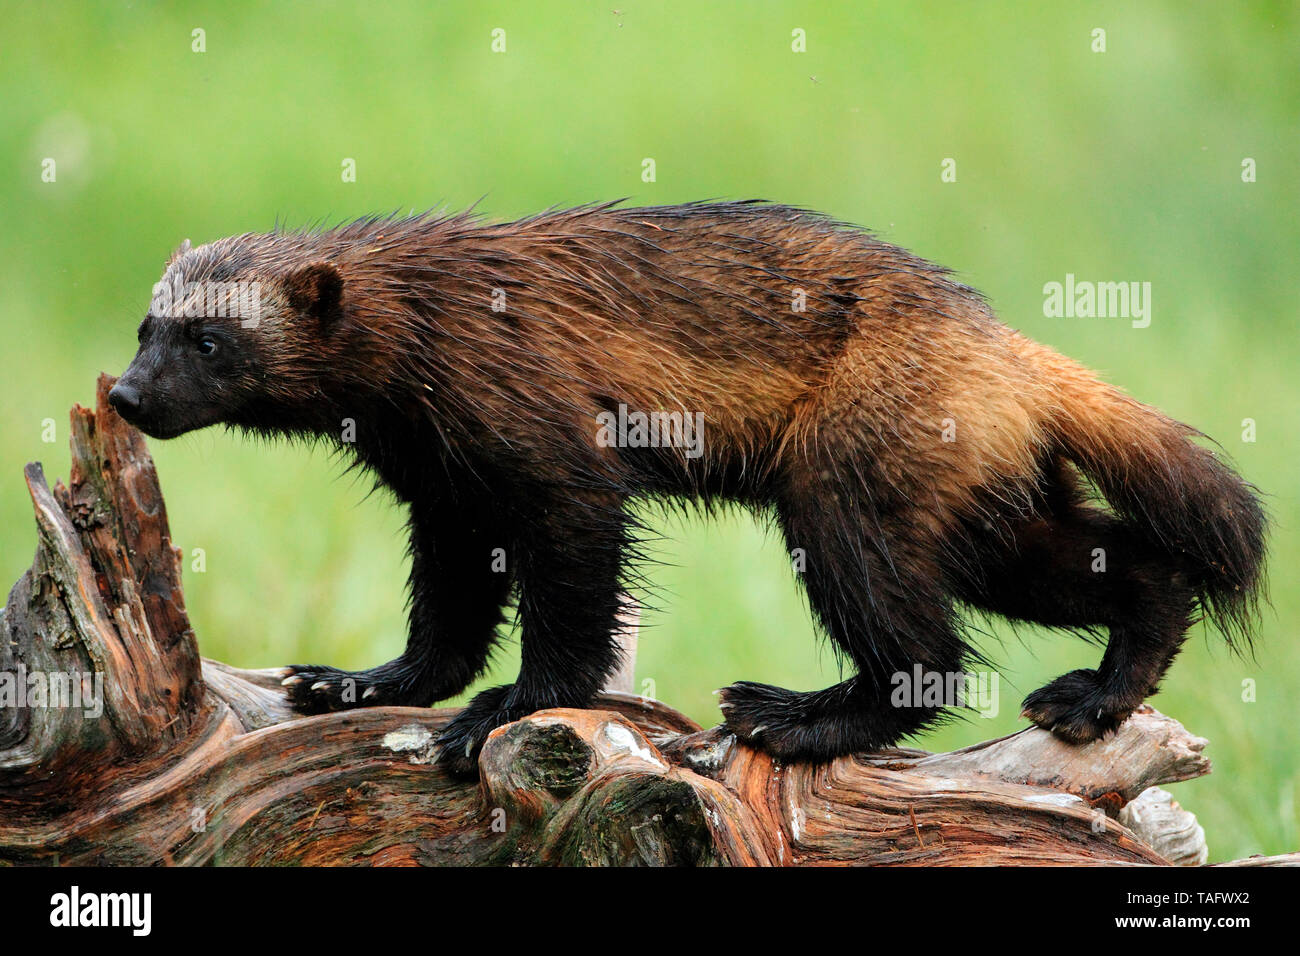 Wolverine (Gulo gulo) on a stump in the boreal forest - Stock Image